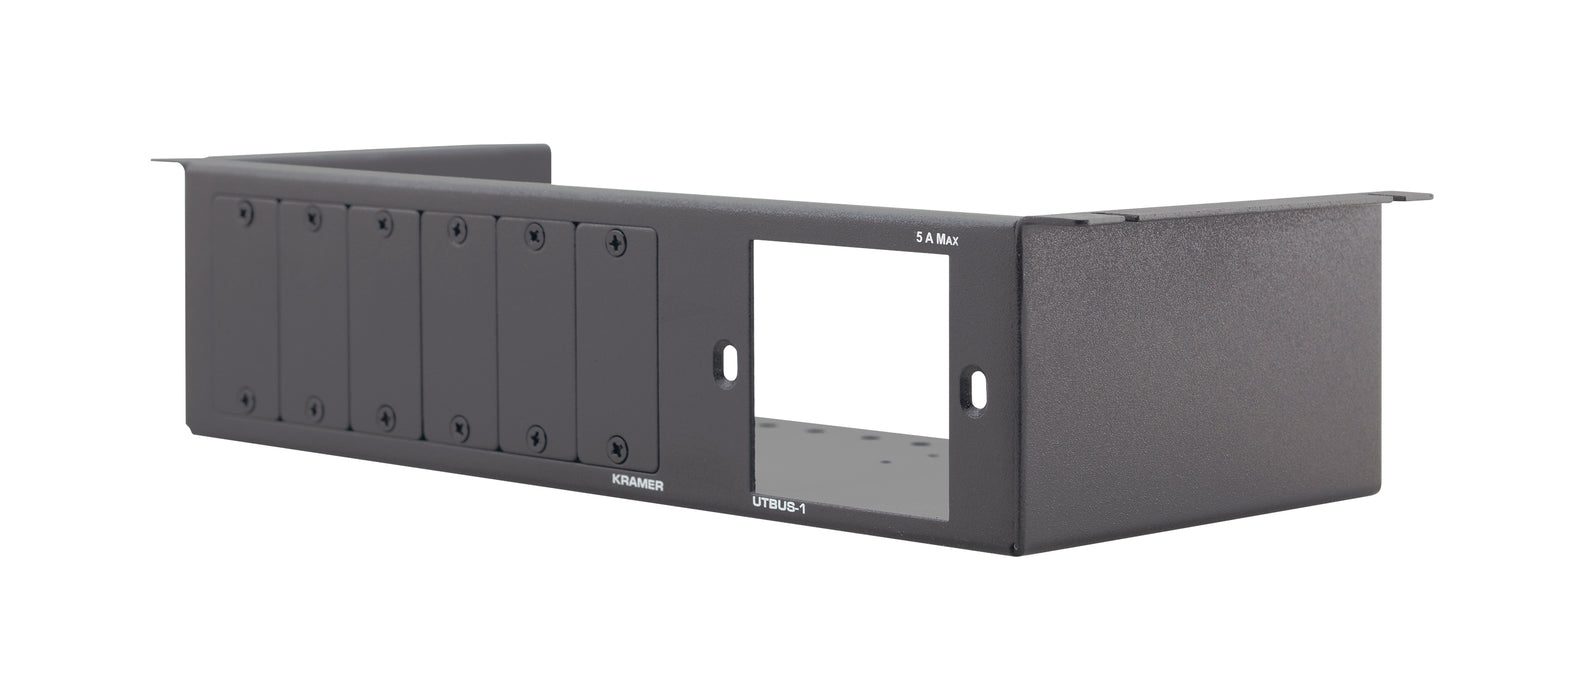 UTBUS-1XL Under Table Box Multi Connection Base